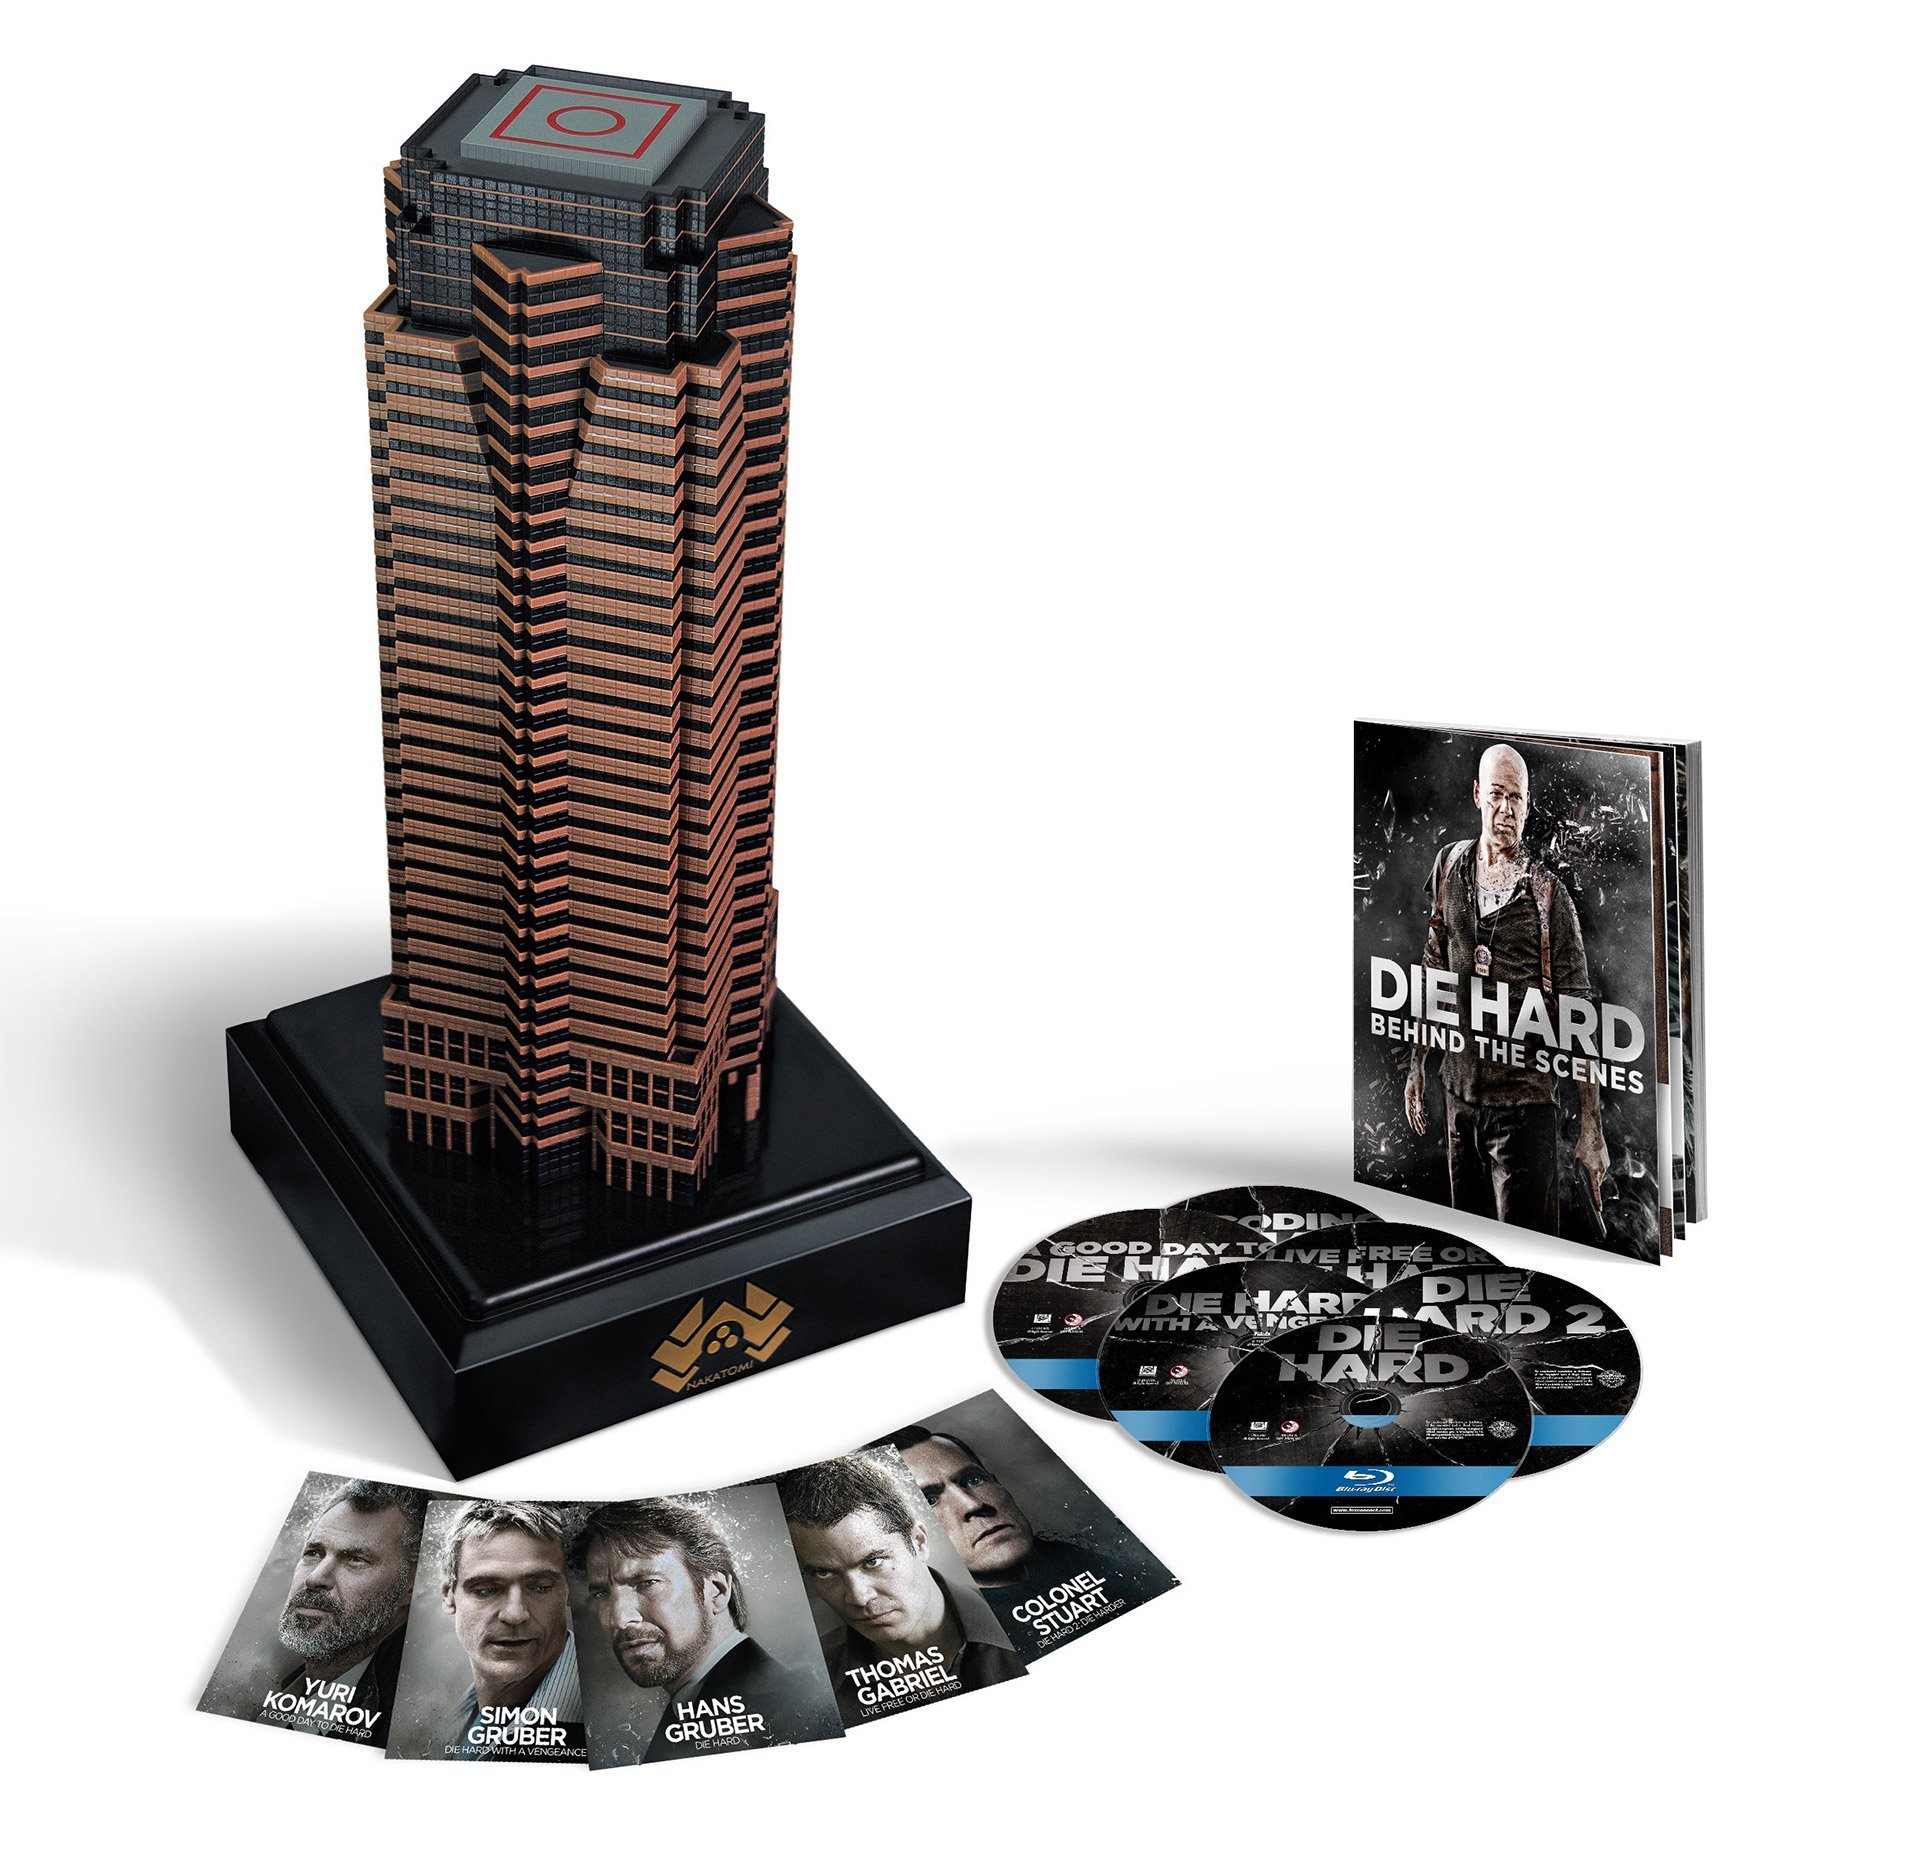 Die Hard Nakatomi Plaza Collection